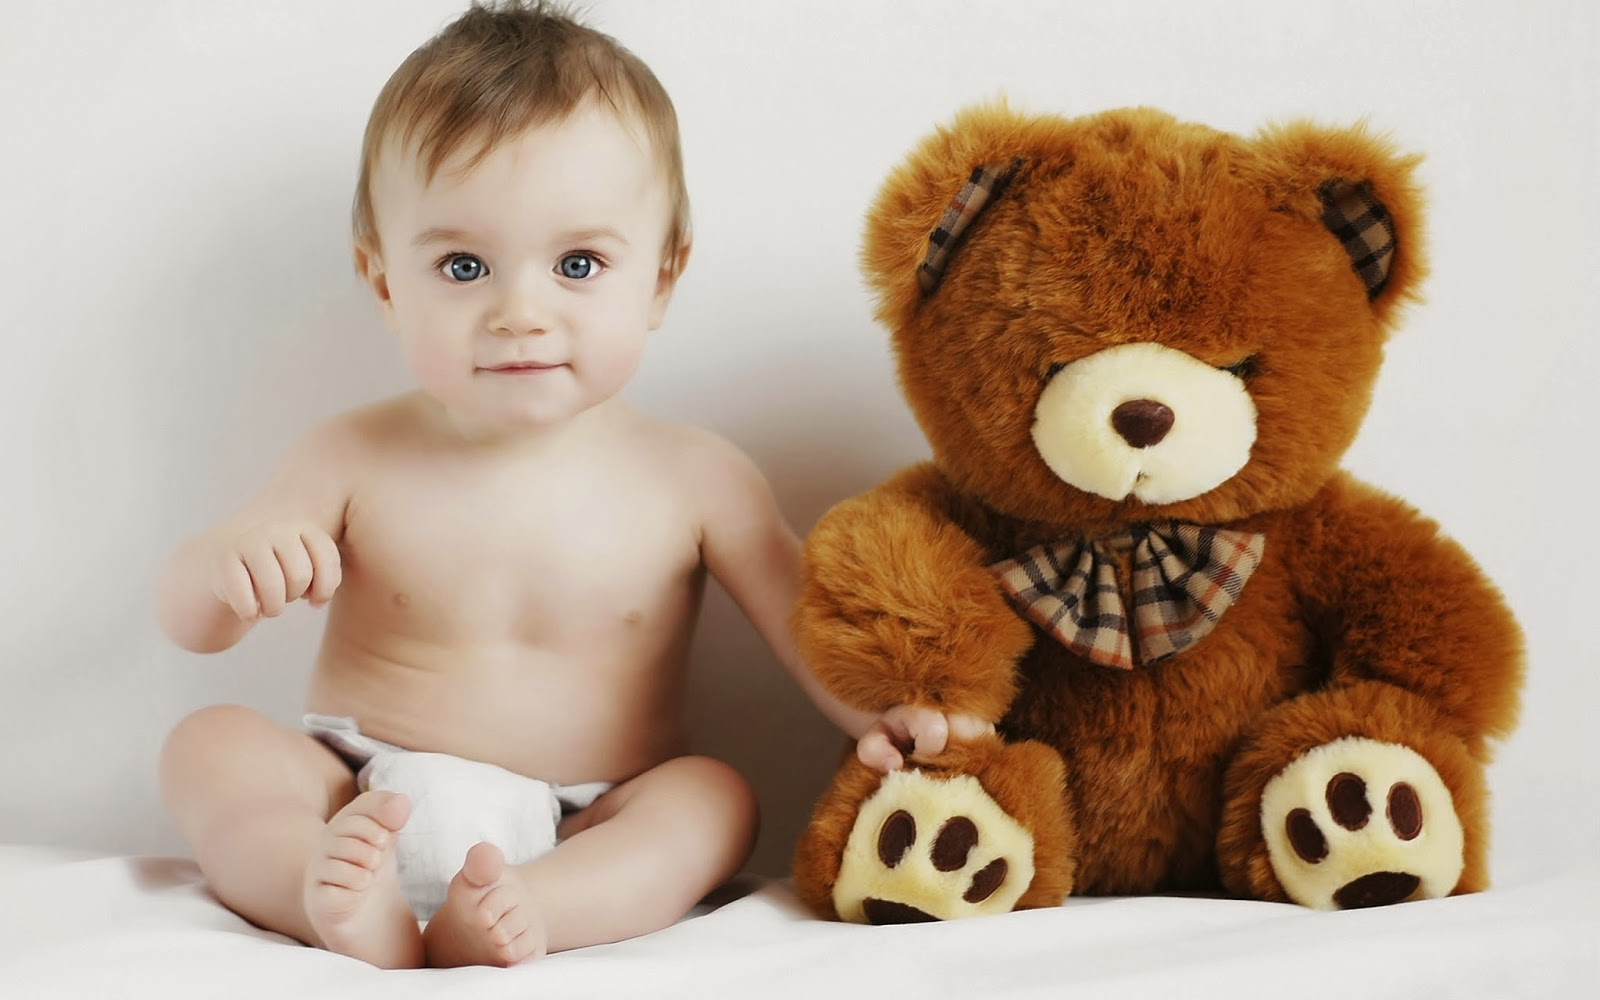 baby-with-toy-teddy-bear-photo-hd.jpg